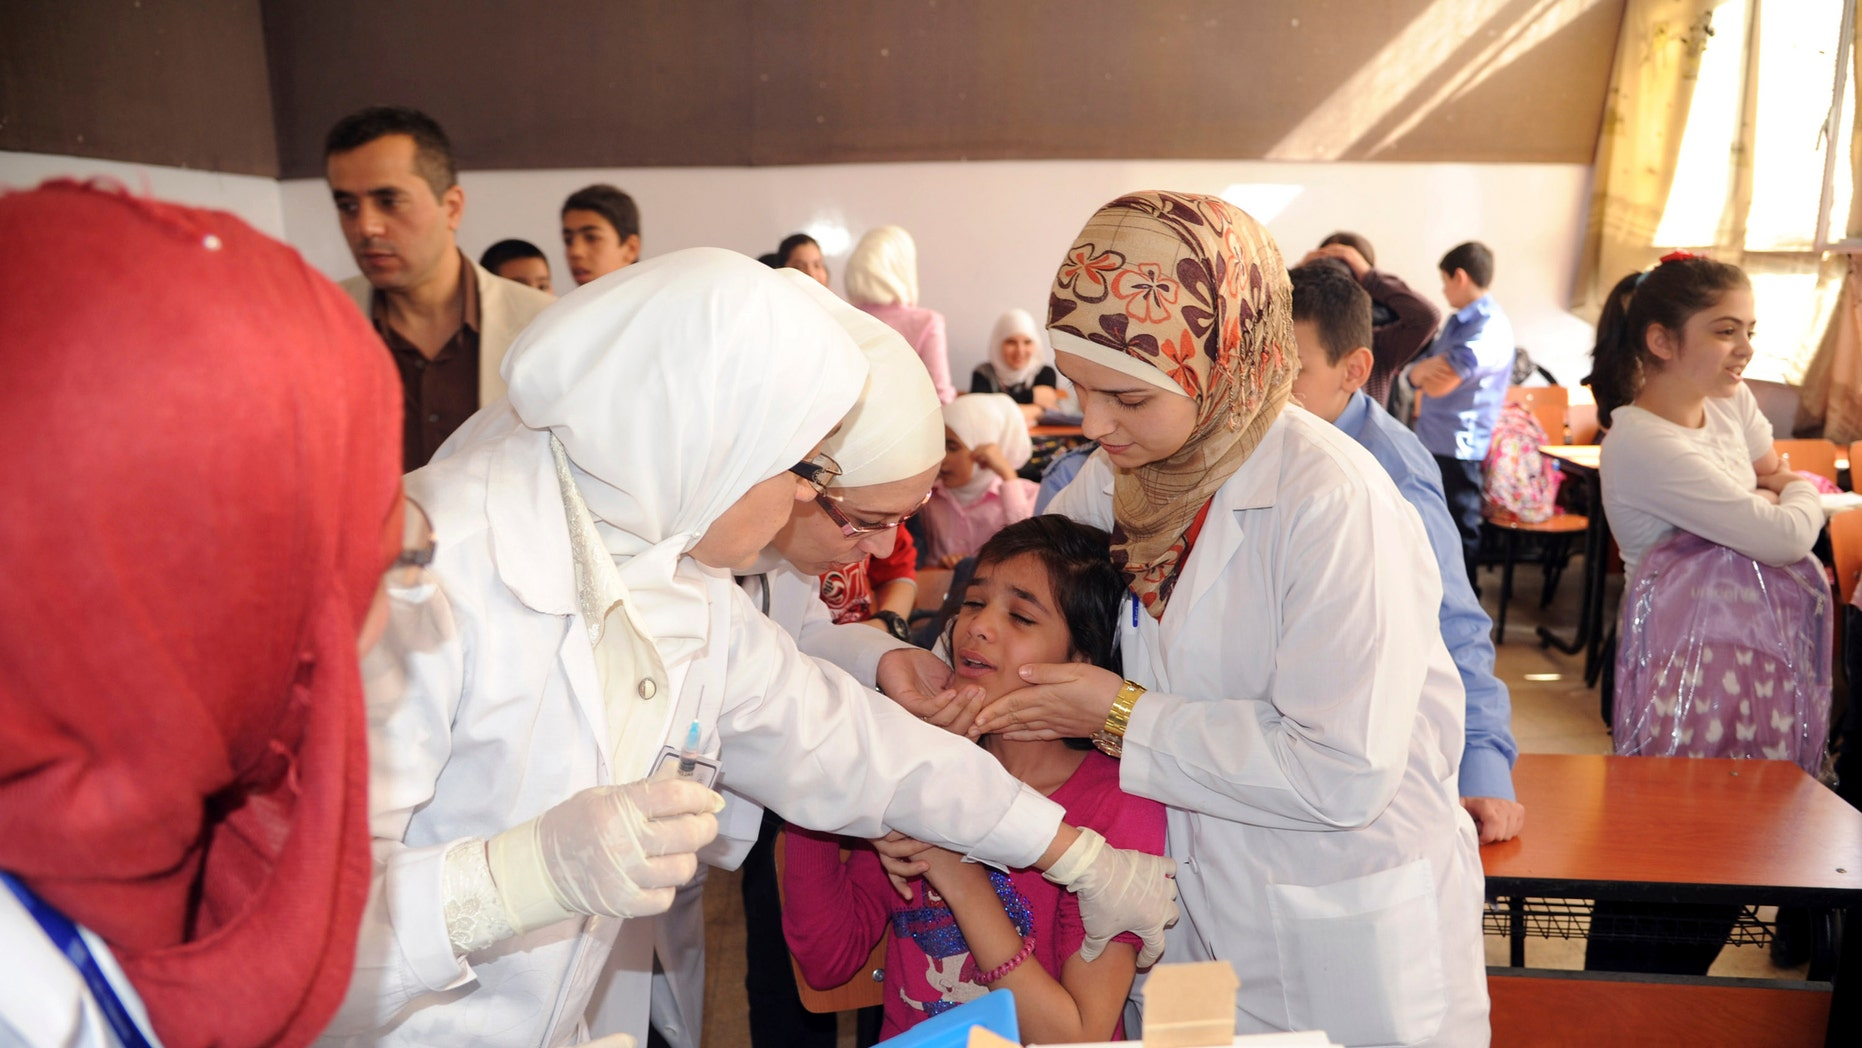 Syrian health workers administer polio vaccination to a girl at a school  in Damascus. (REUTERS/SANA/Handout via Reuters)